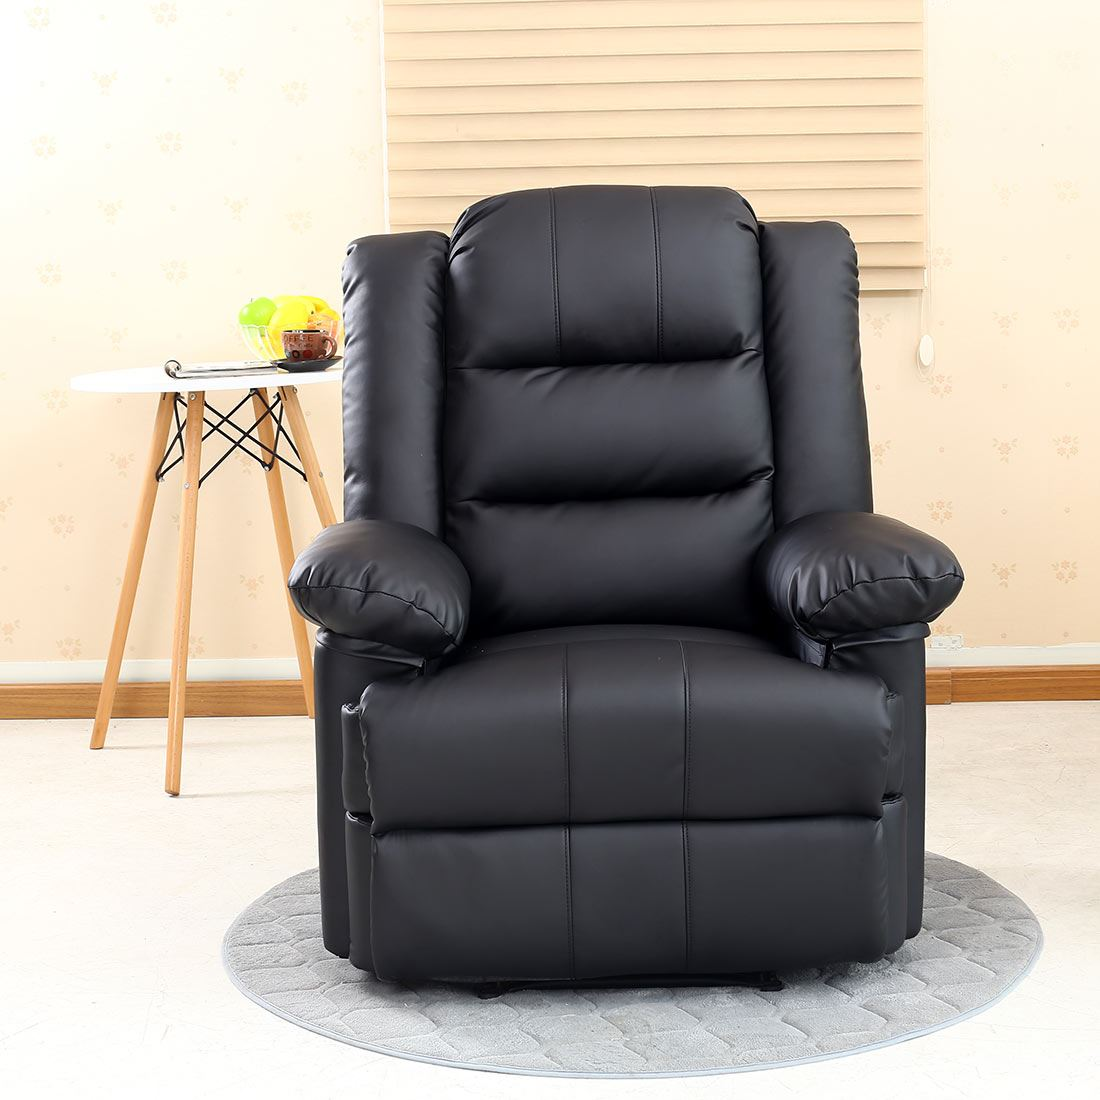 Loxley Leather Recliner Armchair Sofa Home Lounge Chair